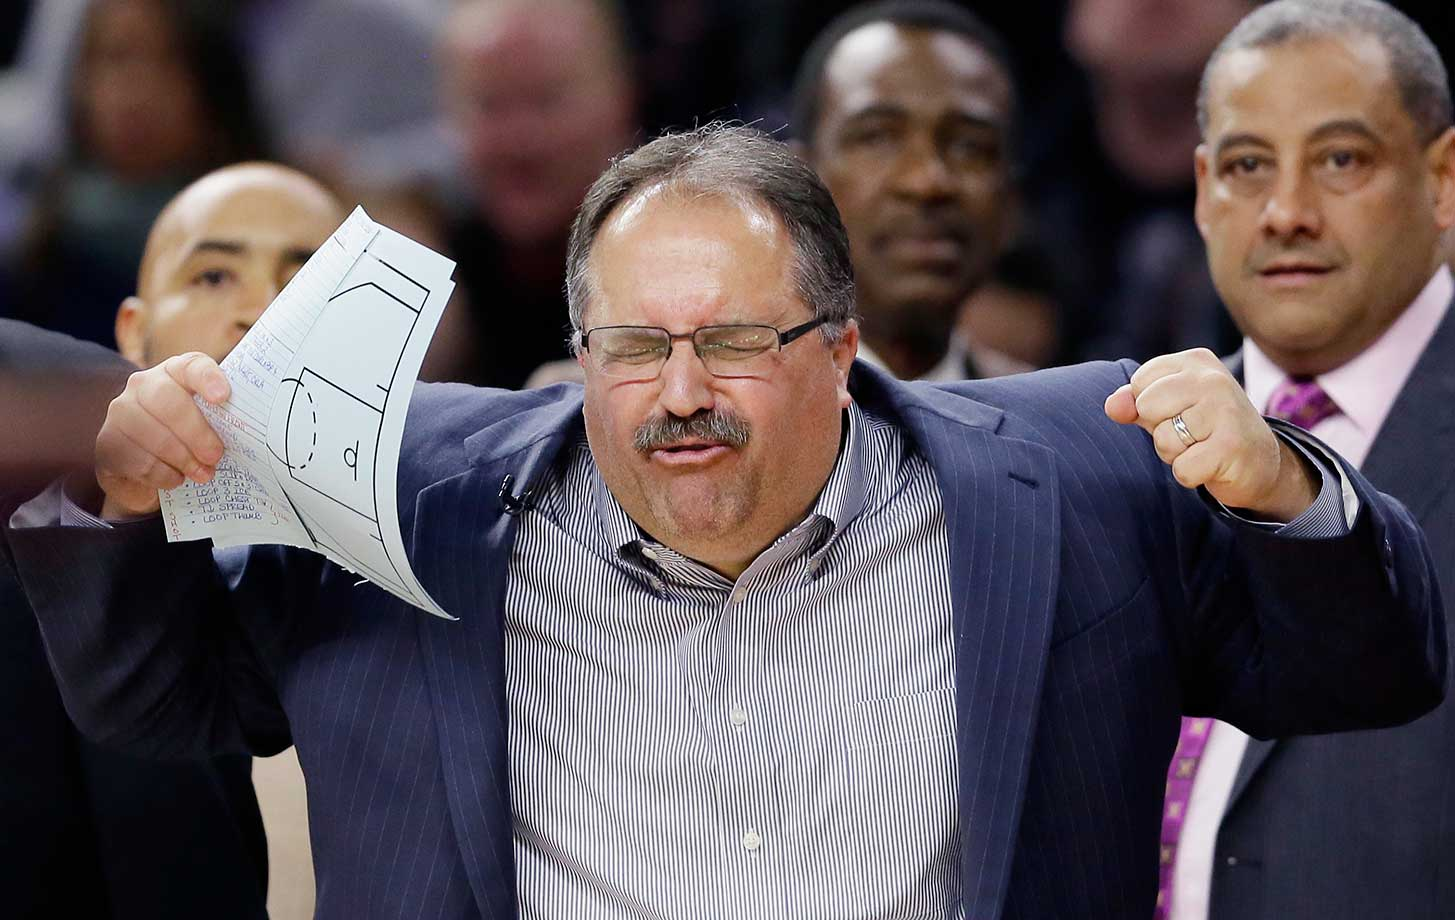 Detroit Pistons head coach Stan Van Gundy reacts after a call against the New York Knicks.